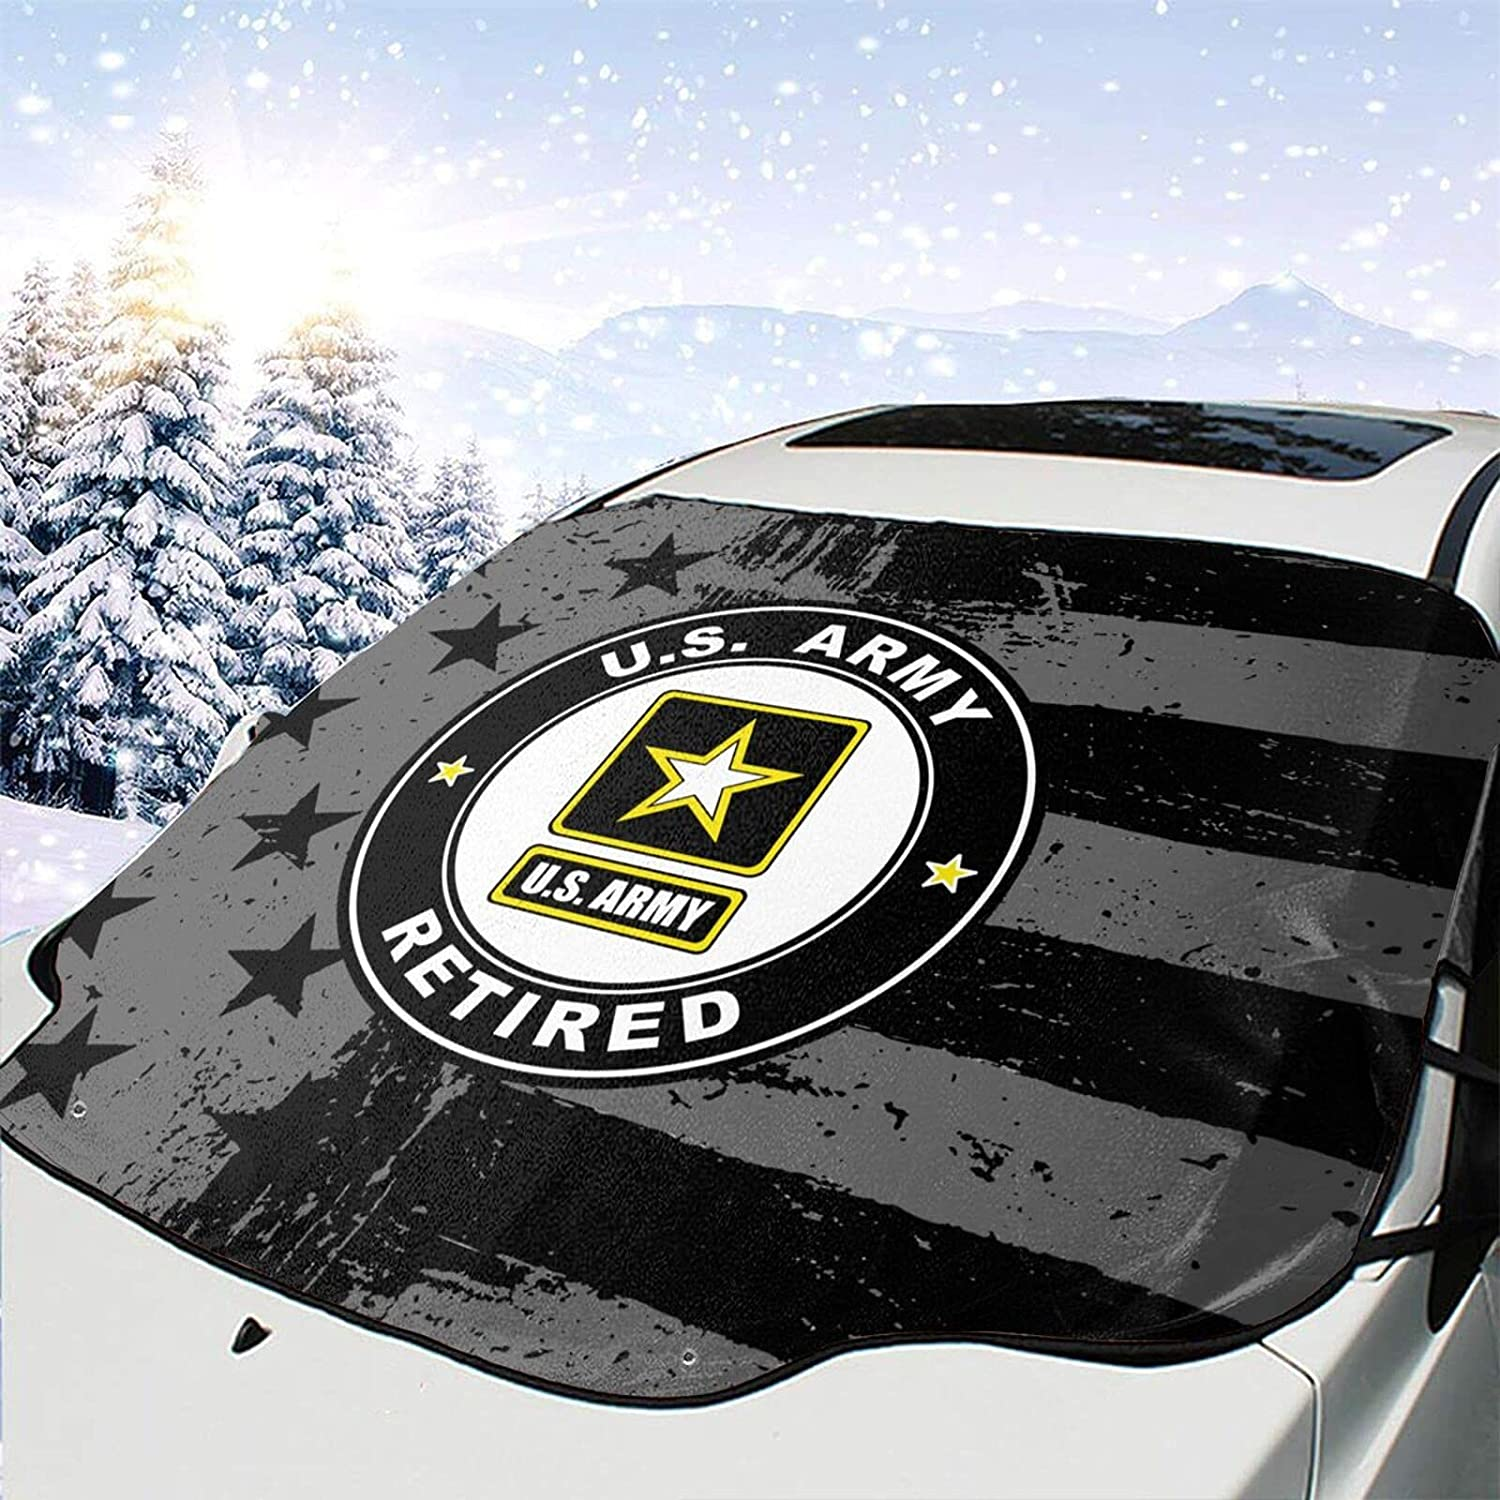 Us Army Retired Windshield Snow Cover Department store Don't miss the campaign Visor Ice Wiper Removal Pr